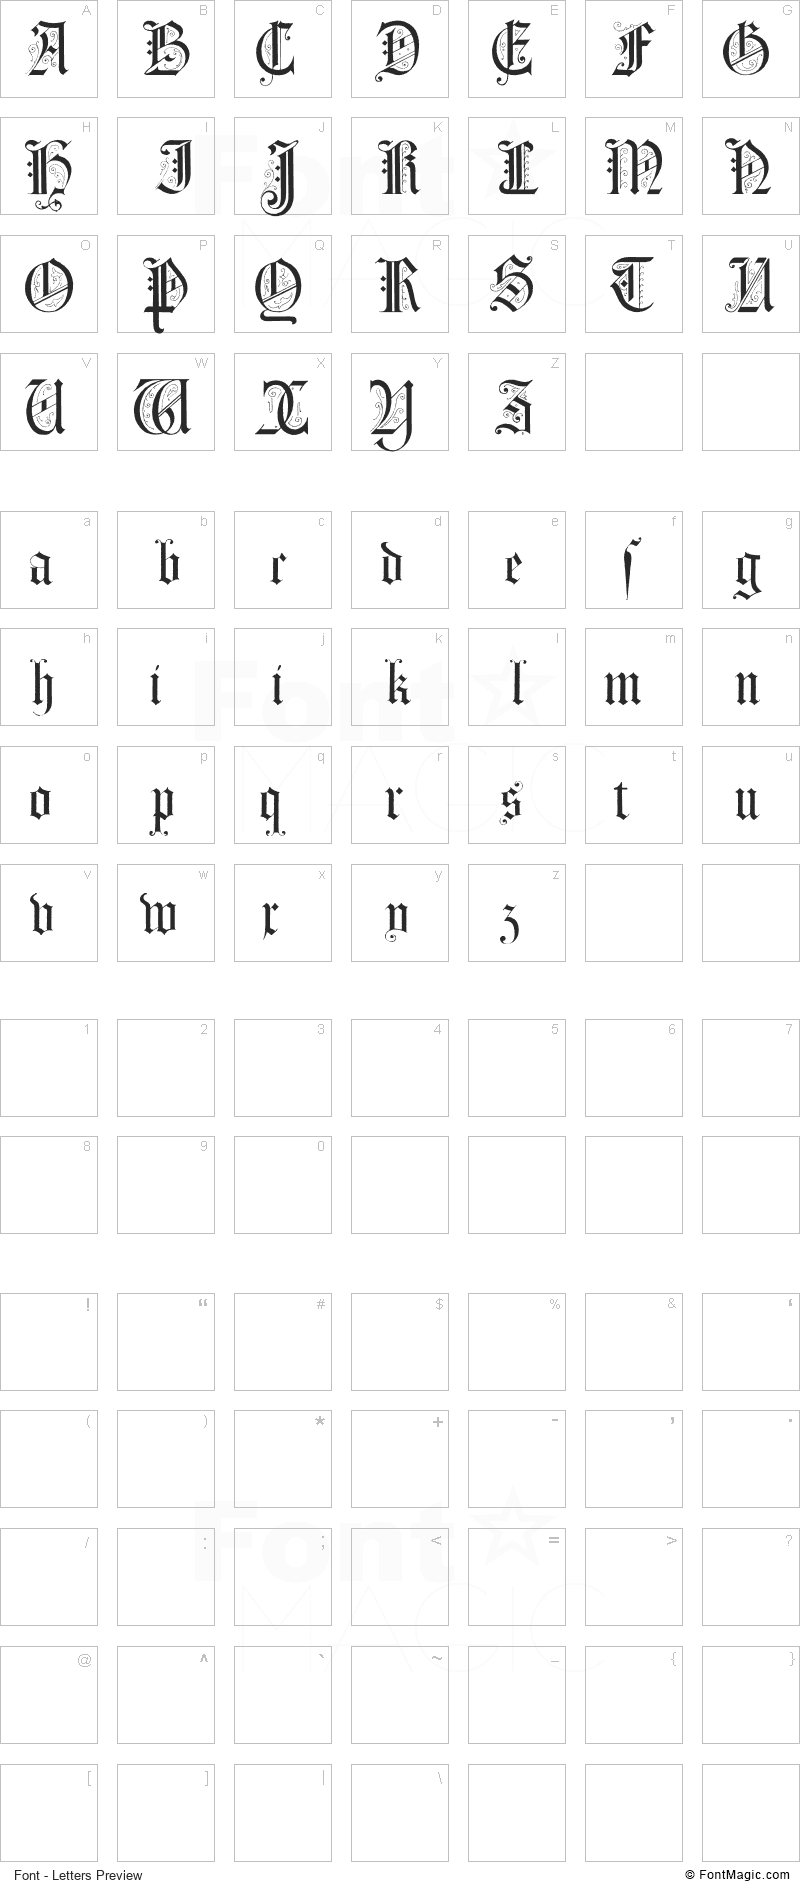 Morcrepito Font - All Latters Preview Chart